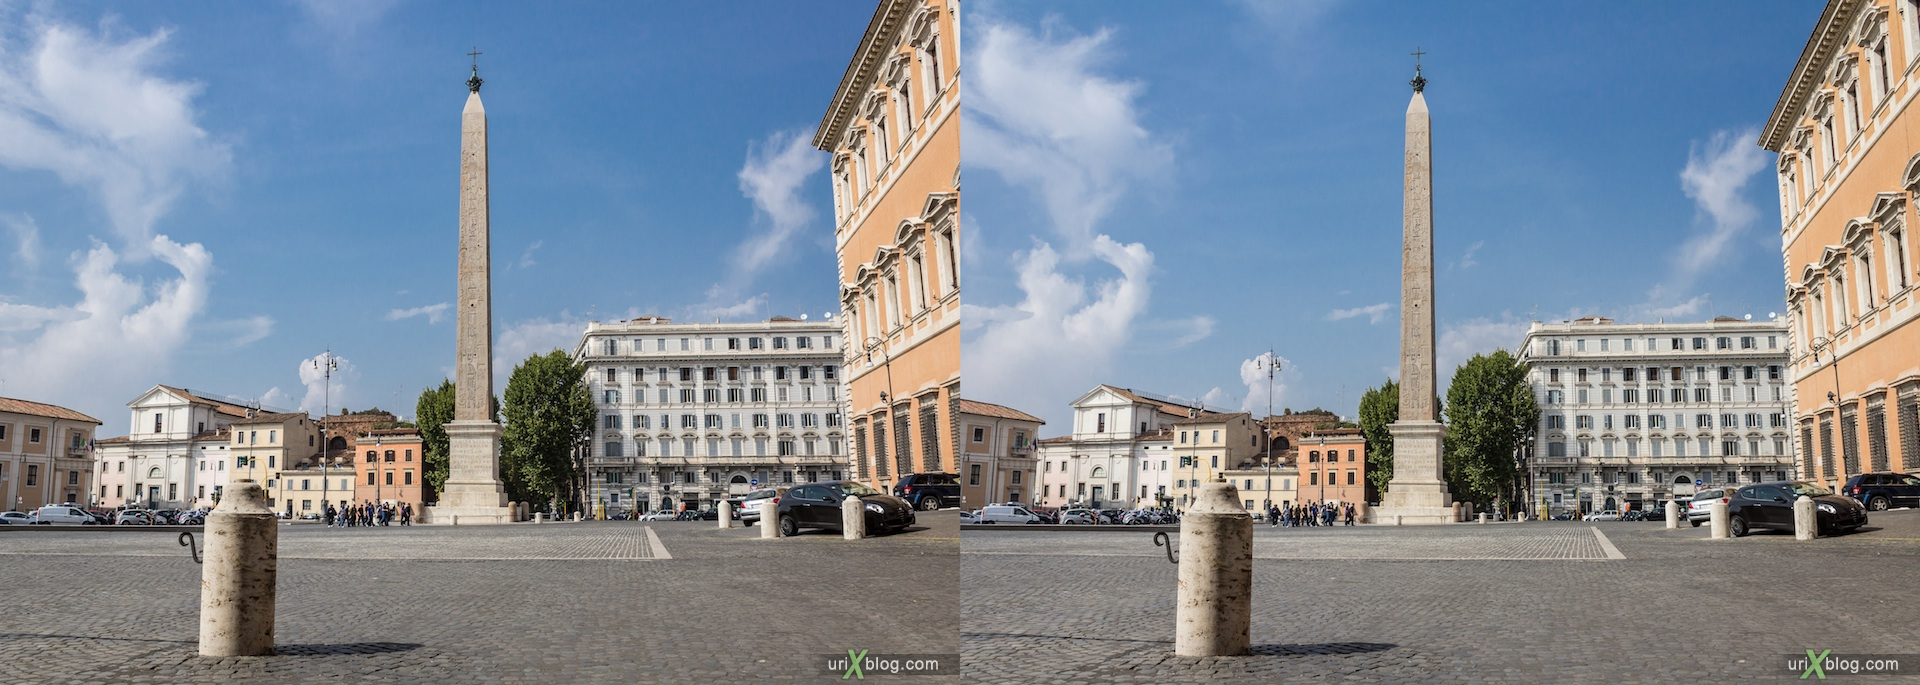 2012, Lateran Obelisk, Ancient Egypt, Piazza di San Giovanni in Laterano square, 3D, stereo pair, cross-eyed, crossview, cross view stereo pair